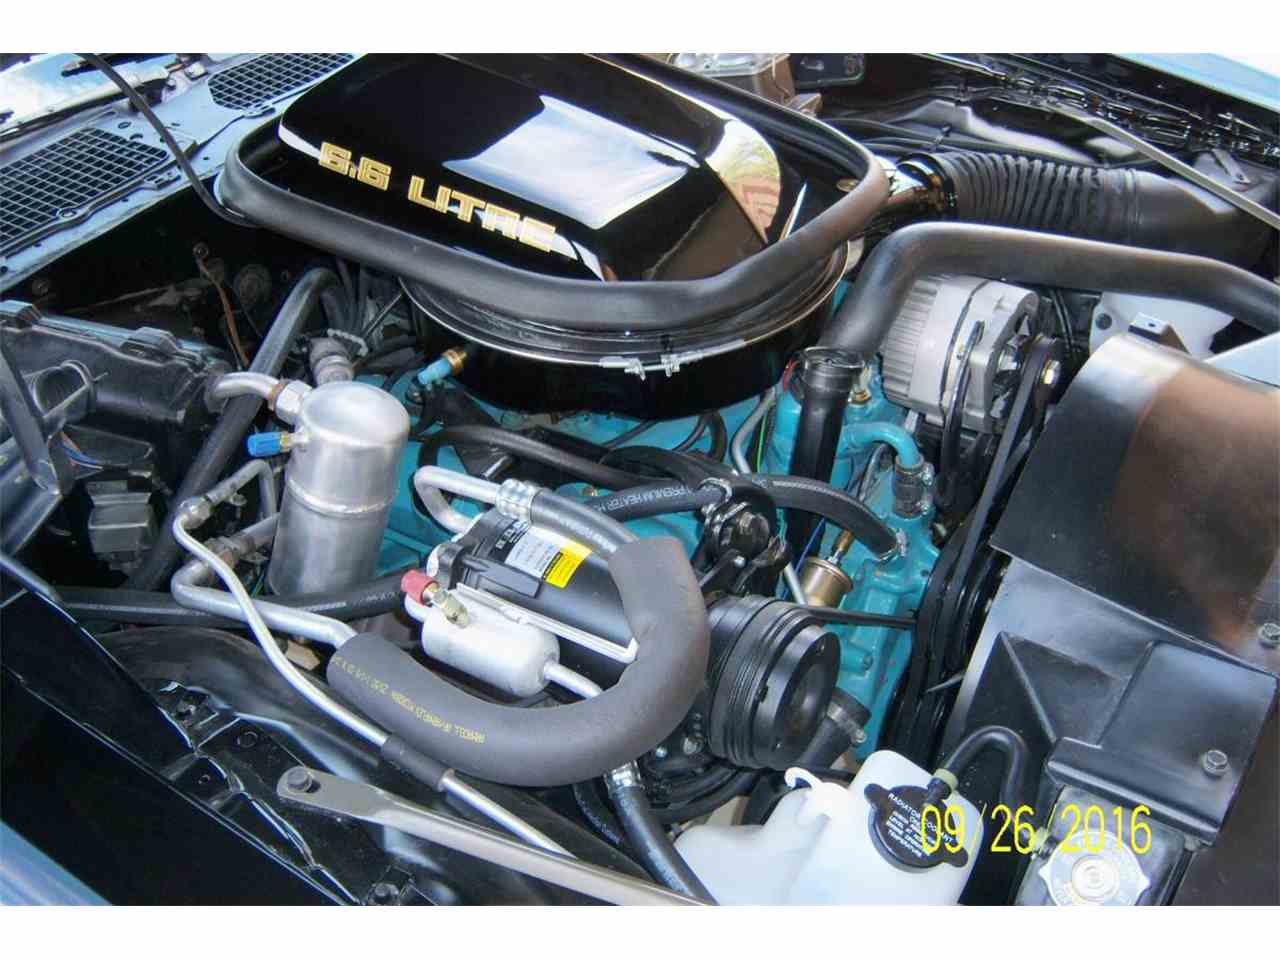 Large Picture of 1979 Firebird Trans Am located in Arizona - $48,000.00 Offered by a Private Seller - KNSK